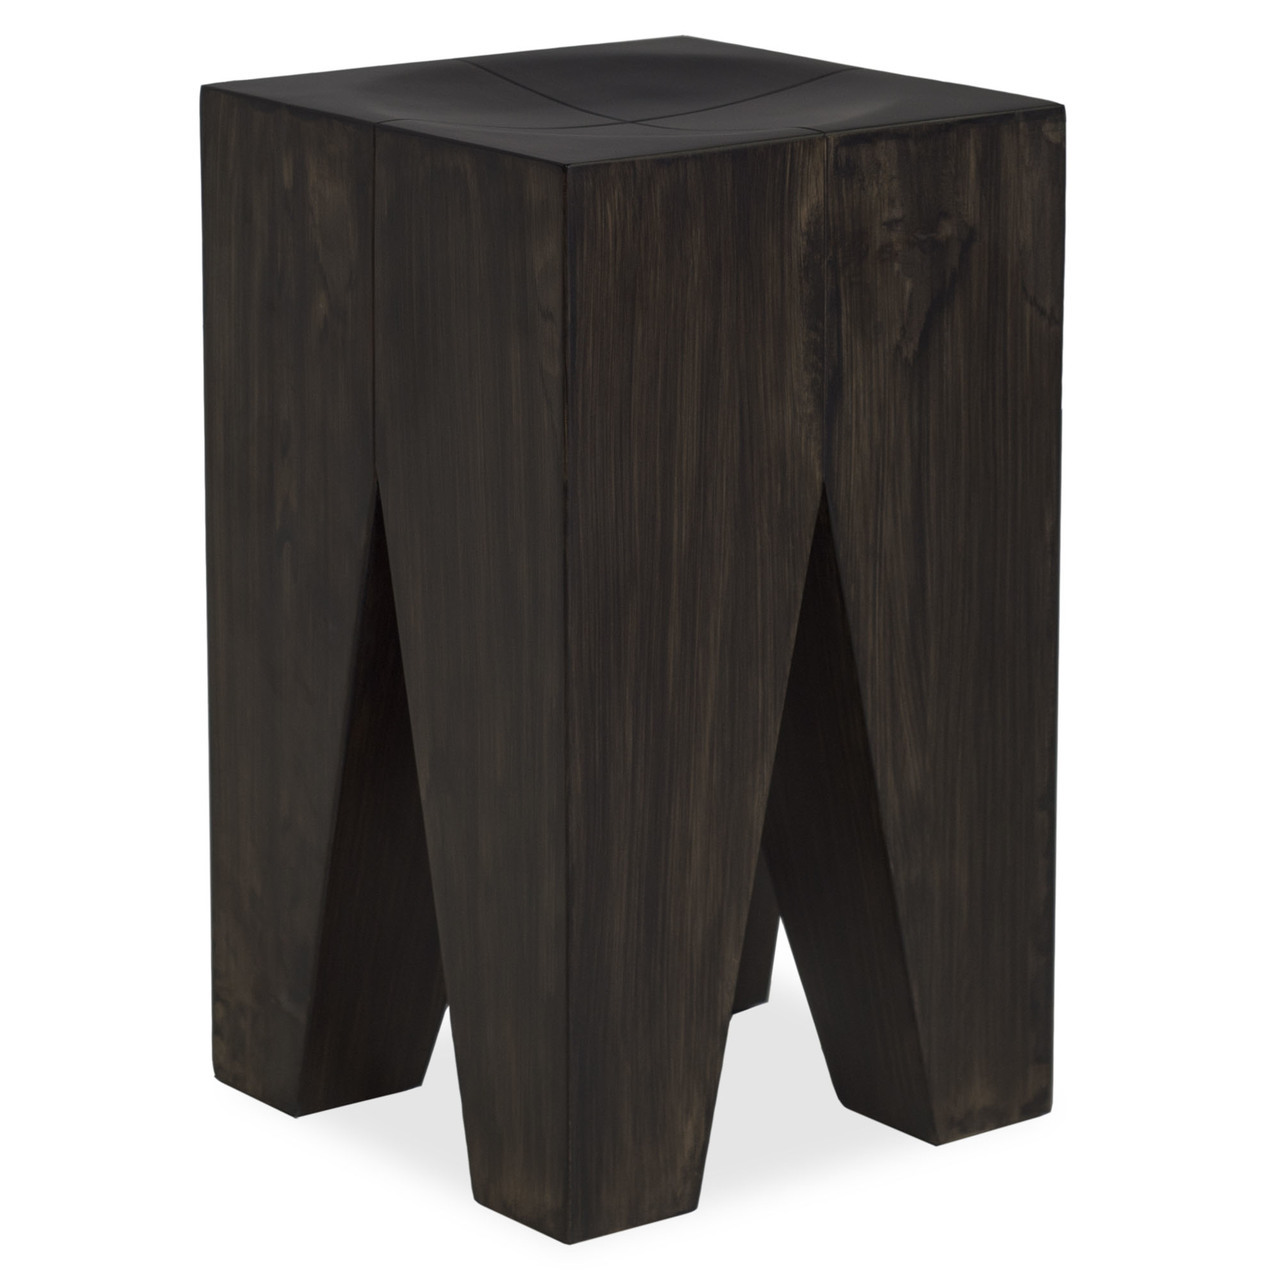 peg accent table stool cantoni leick laurent end kohls slipcovers windham threshold furniture ashley counter height dining living room decor black chairs circular coffee ikea gold